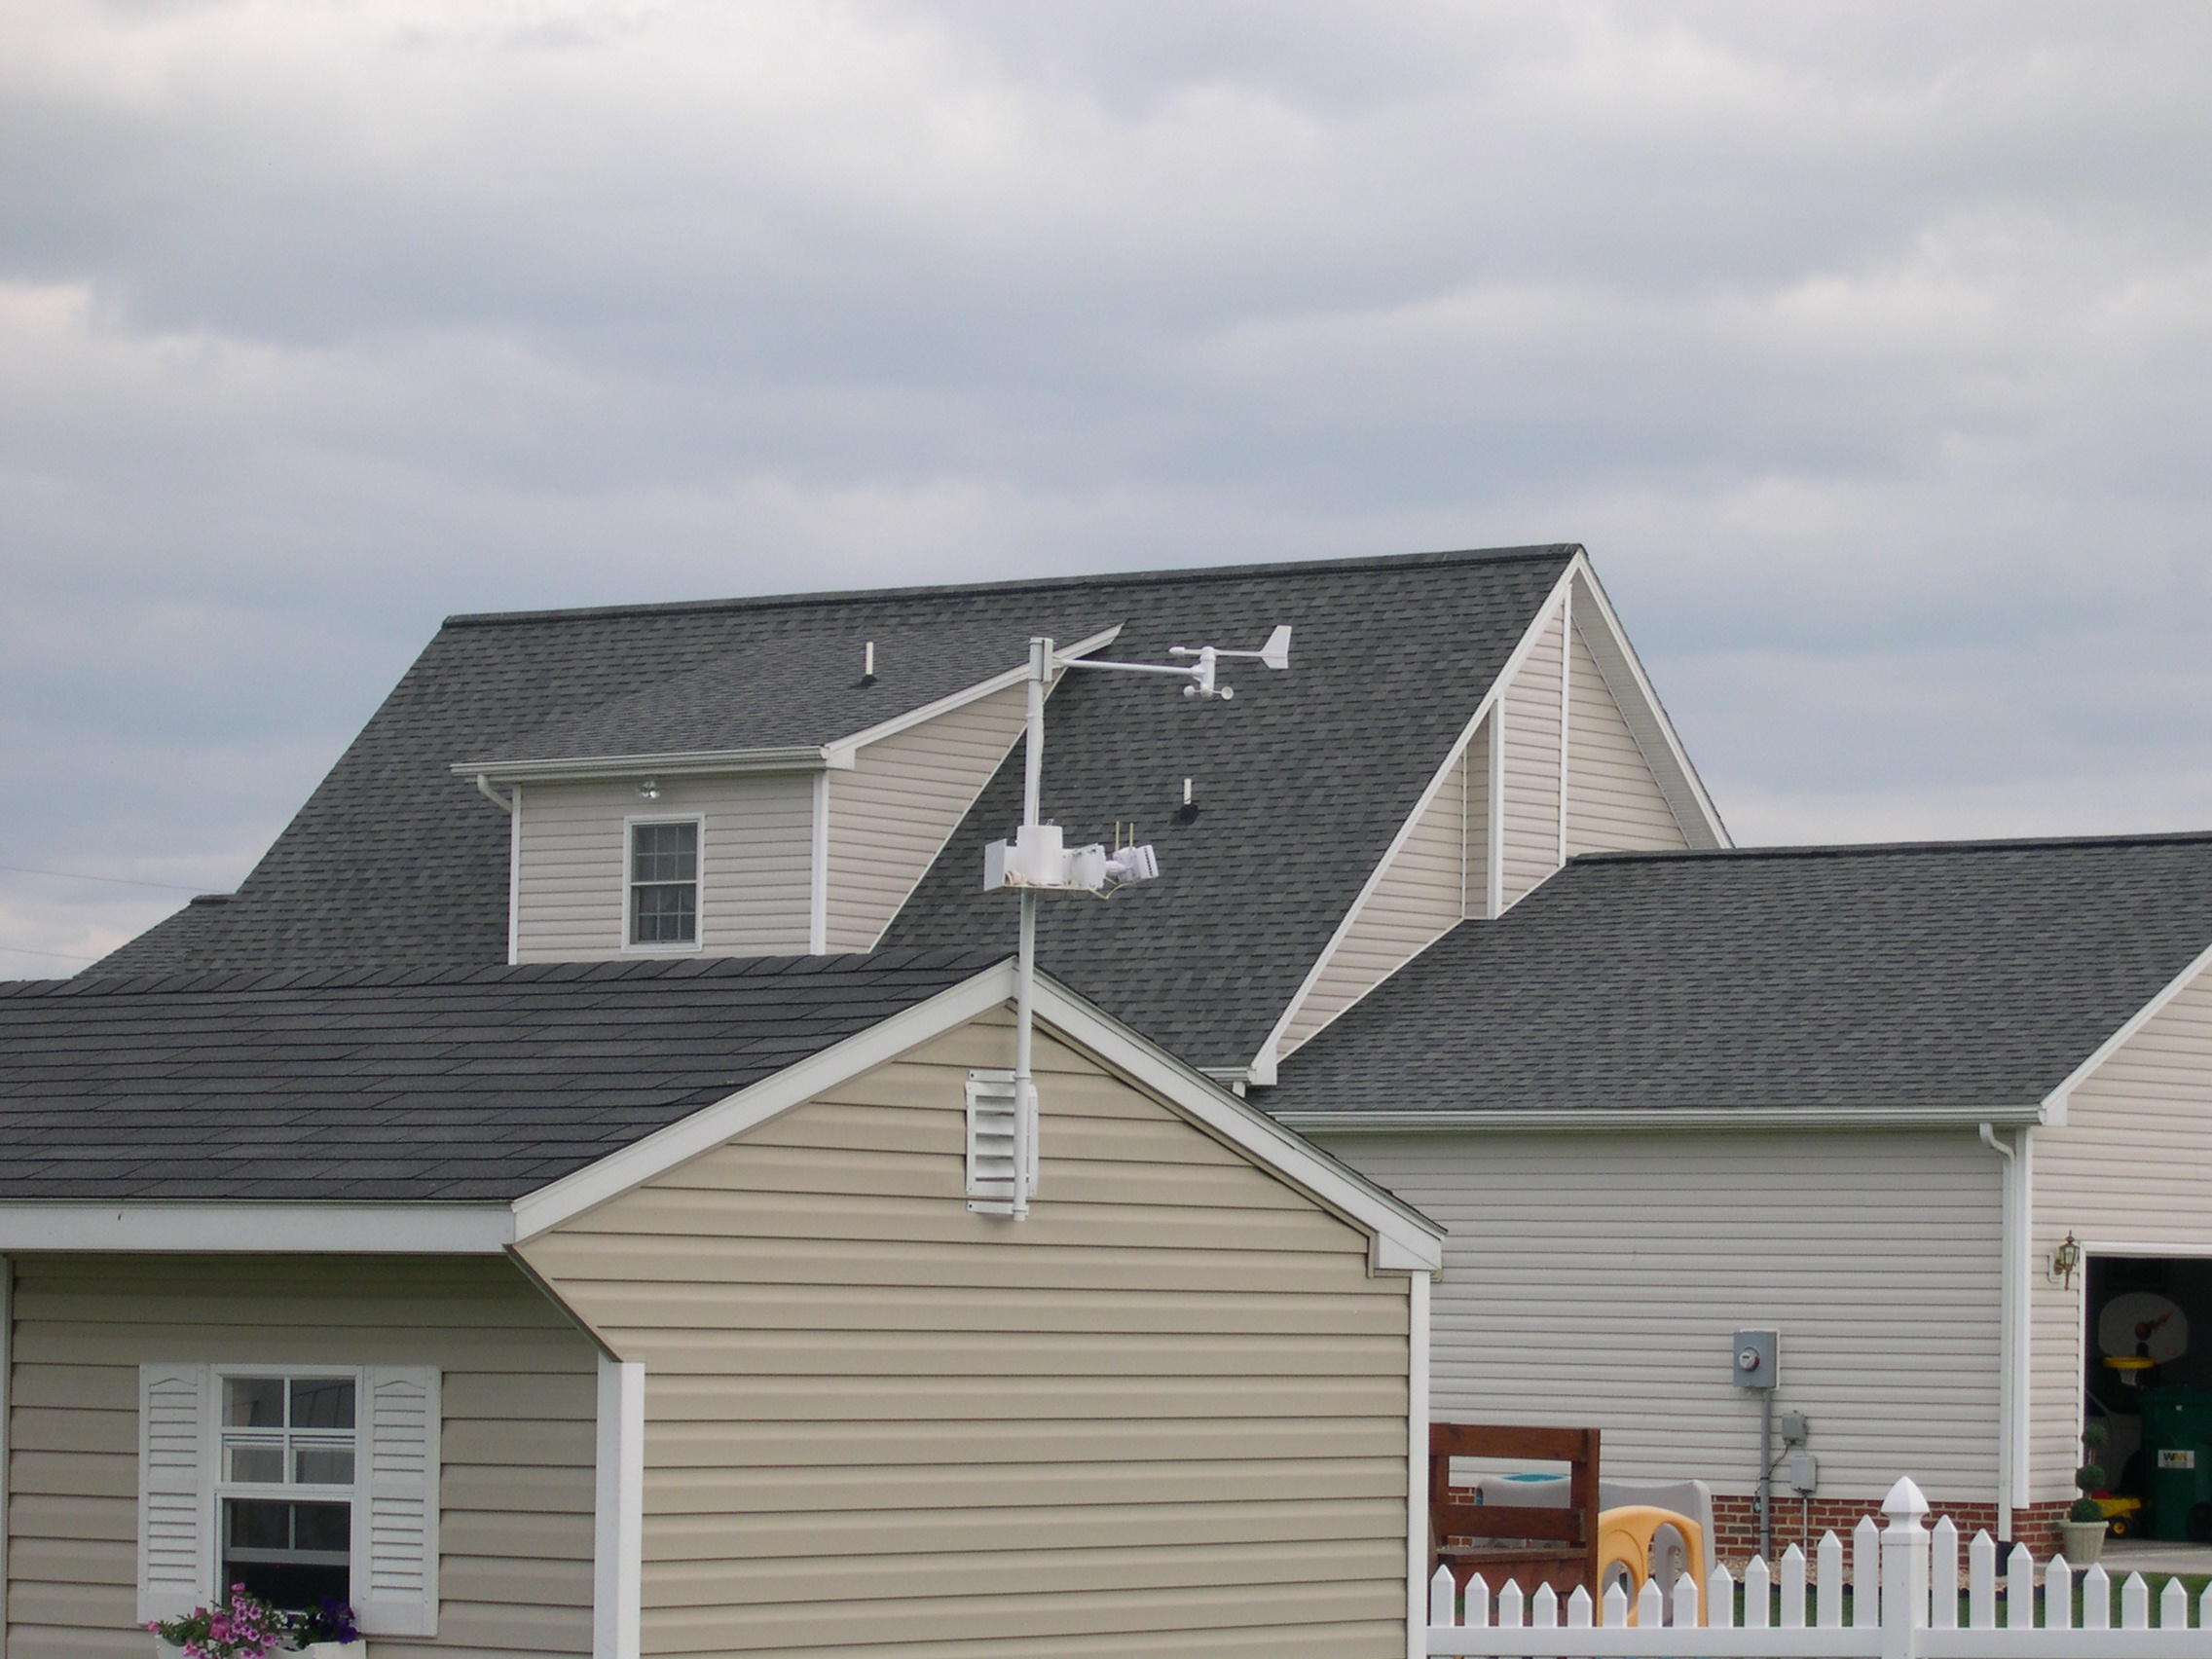 DSCN6762.JPG - Wind Vane/Speed and Rain Collection Sensors